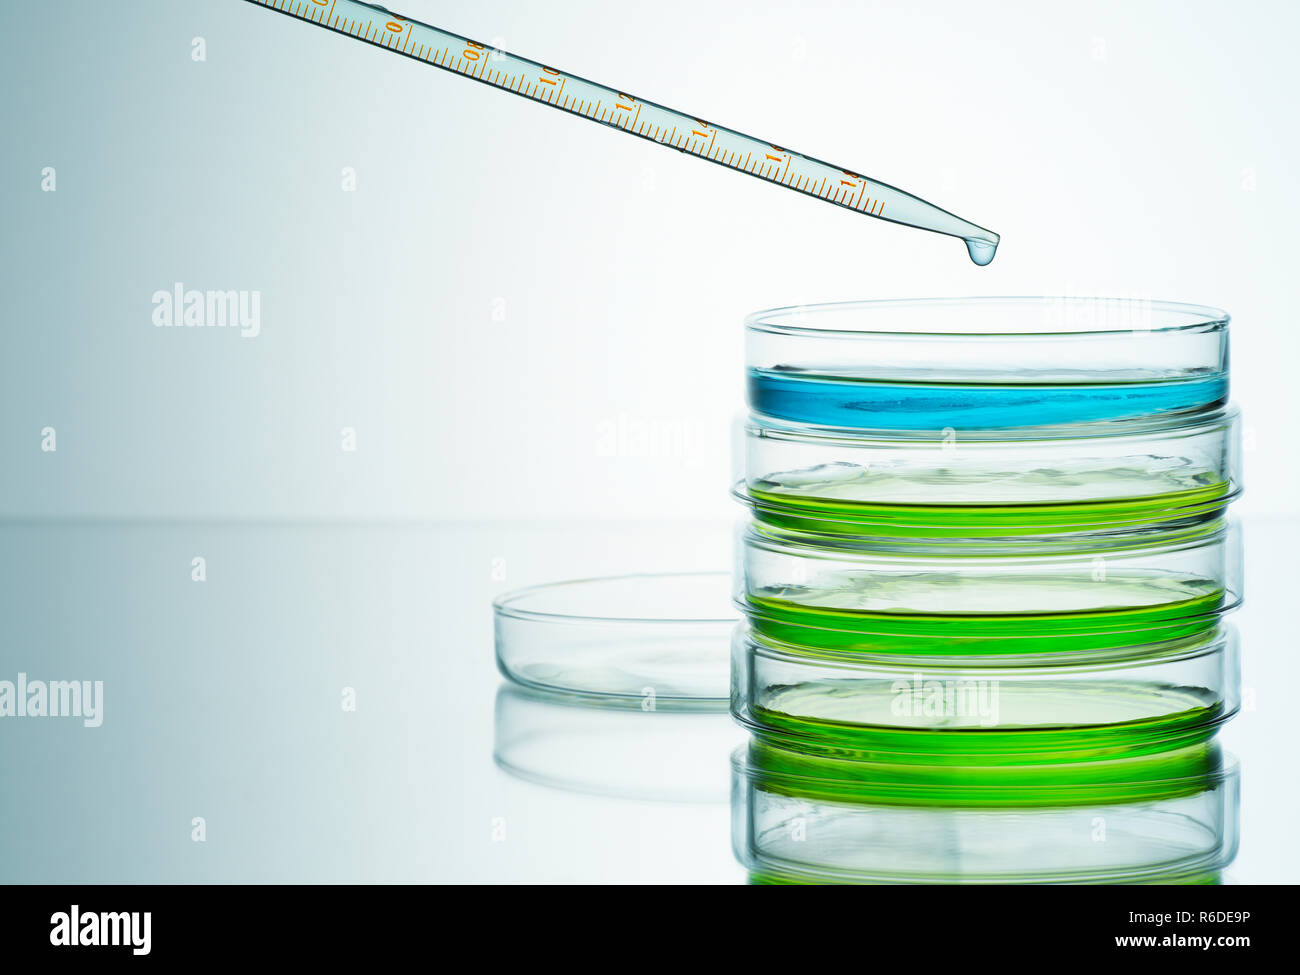 Blue and green liquids in petri dishes with pipette, plain background - Stock Image